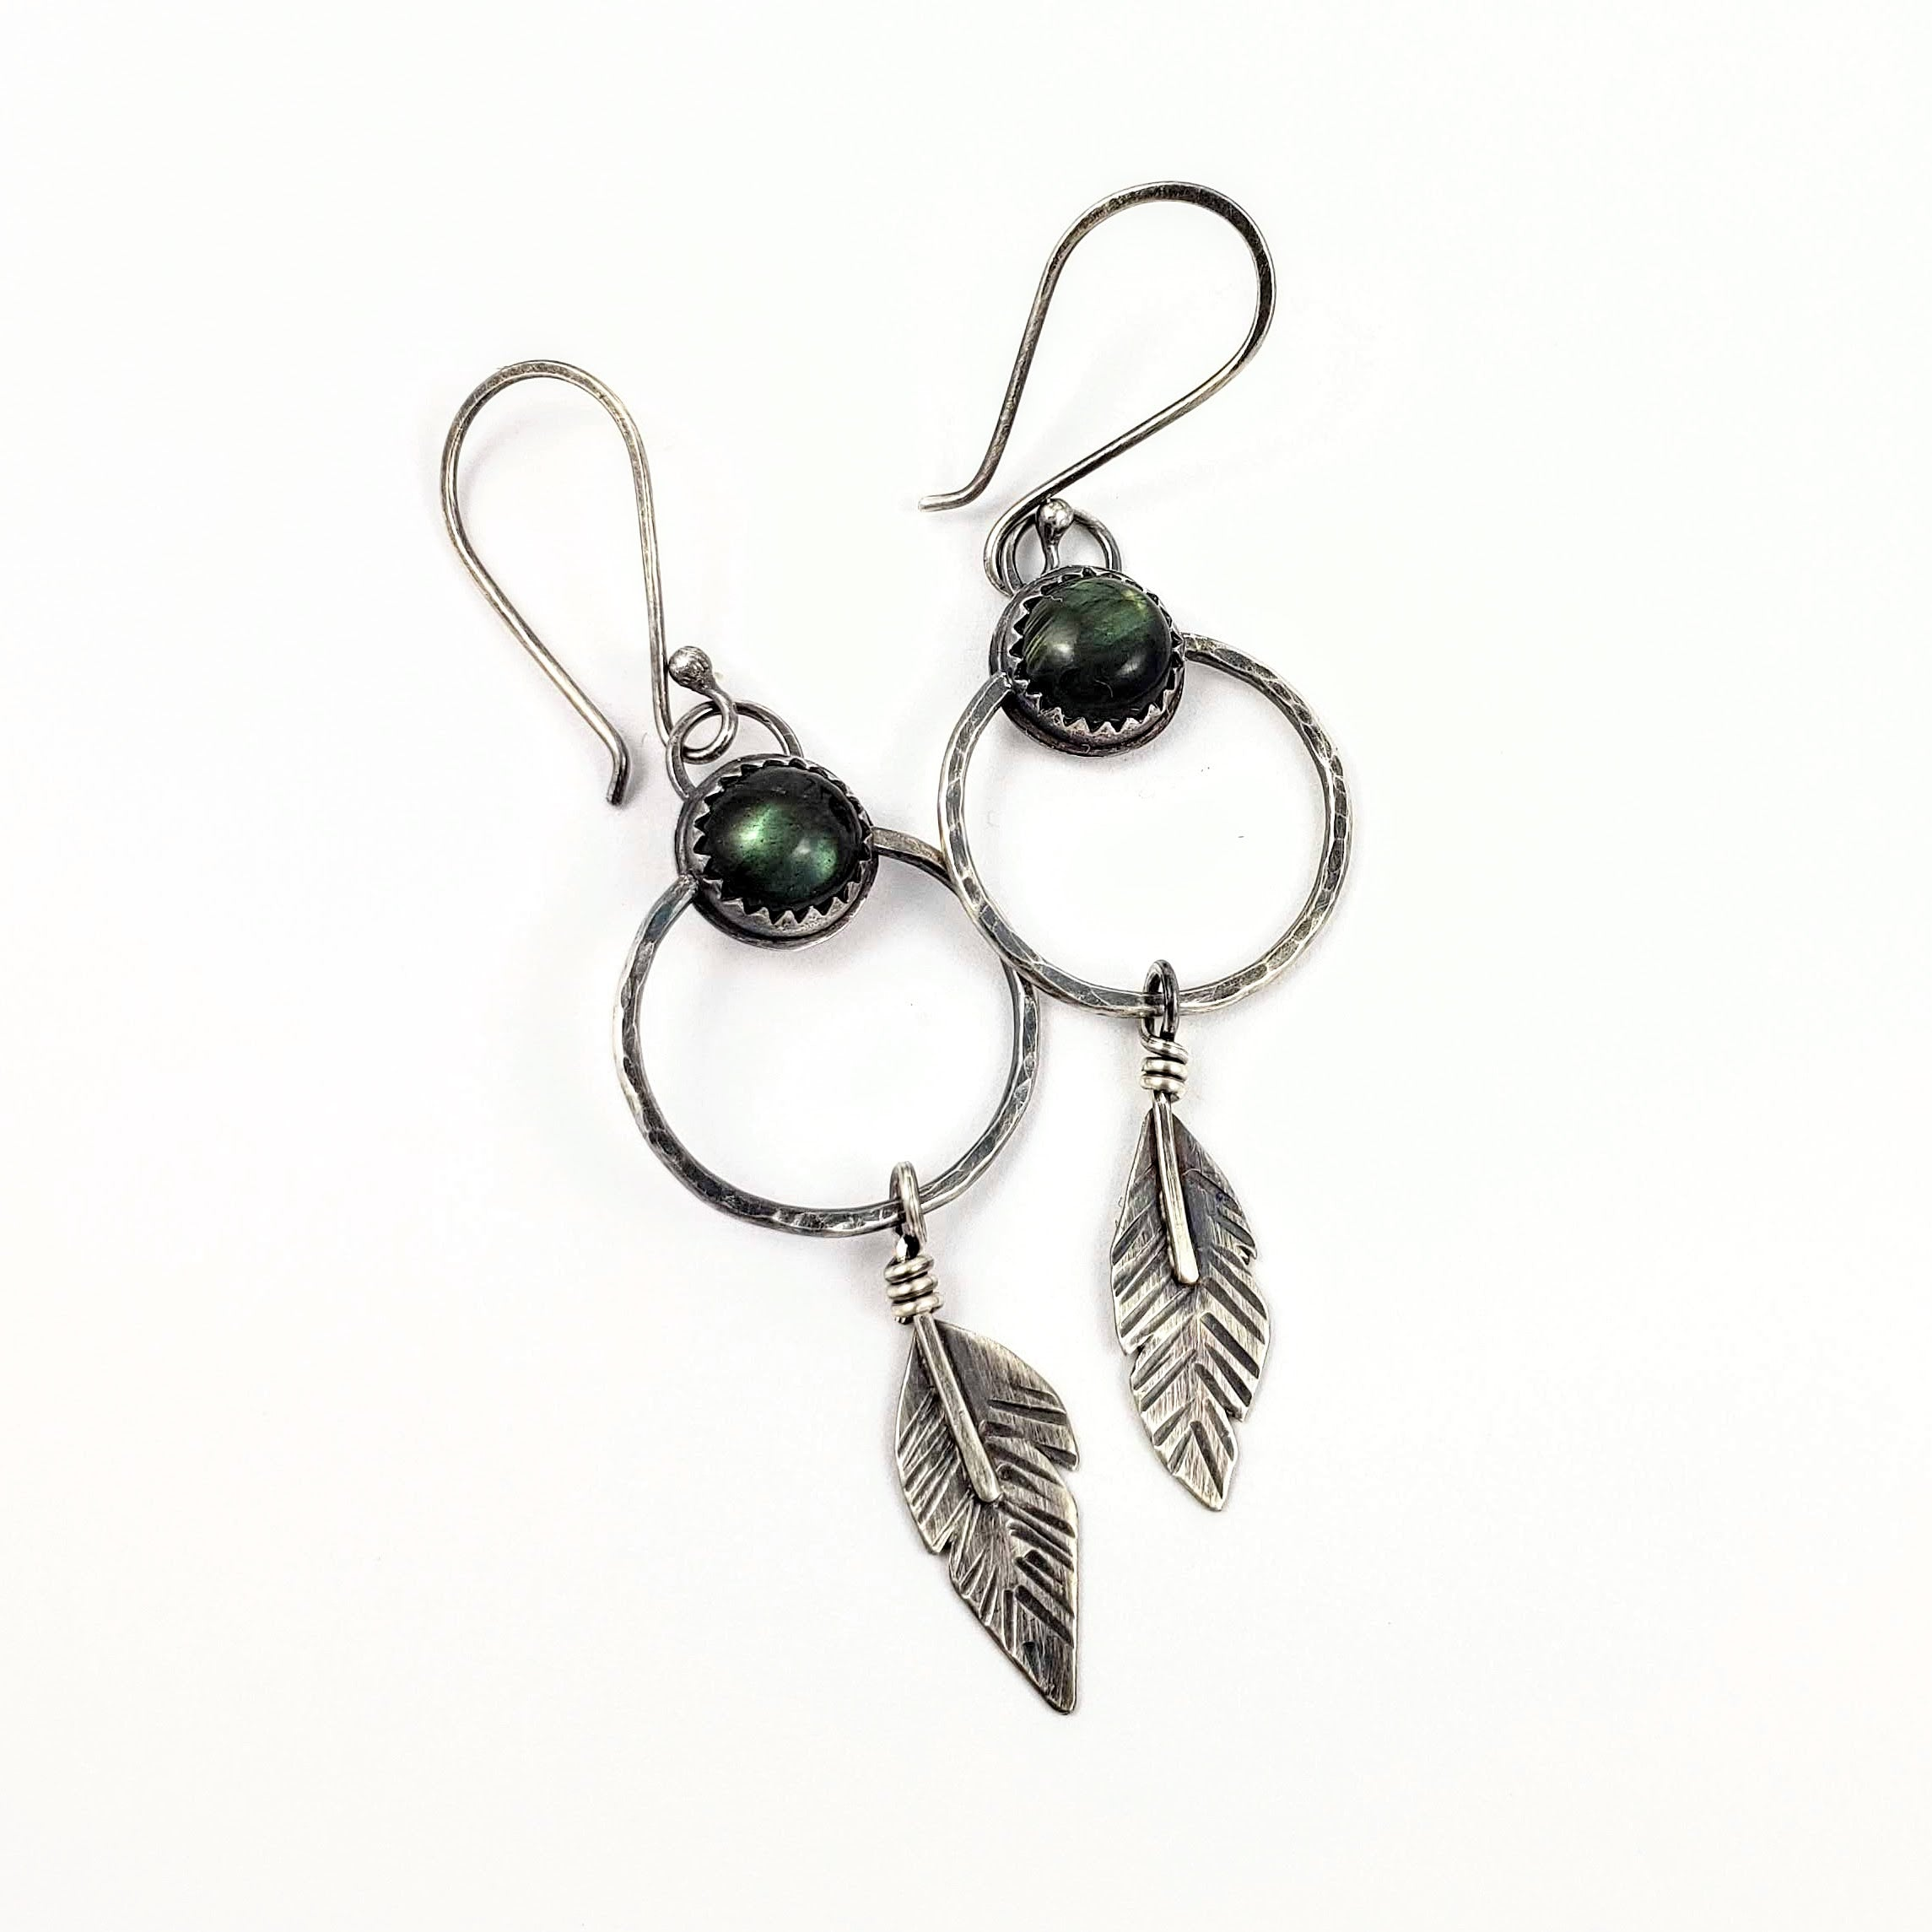 Labradorite Dreamcatcher Earrings